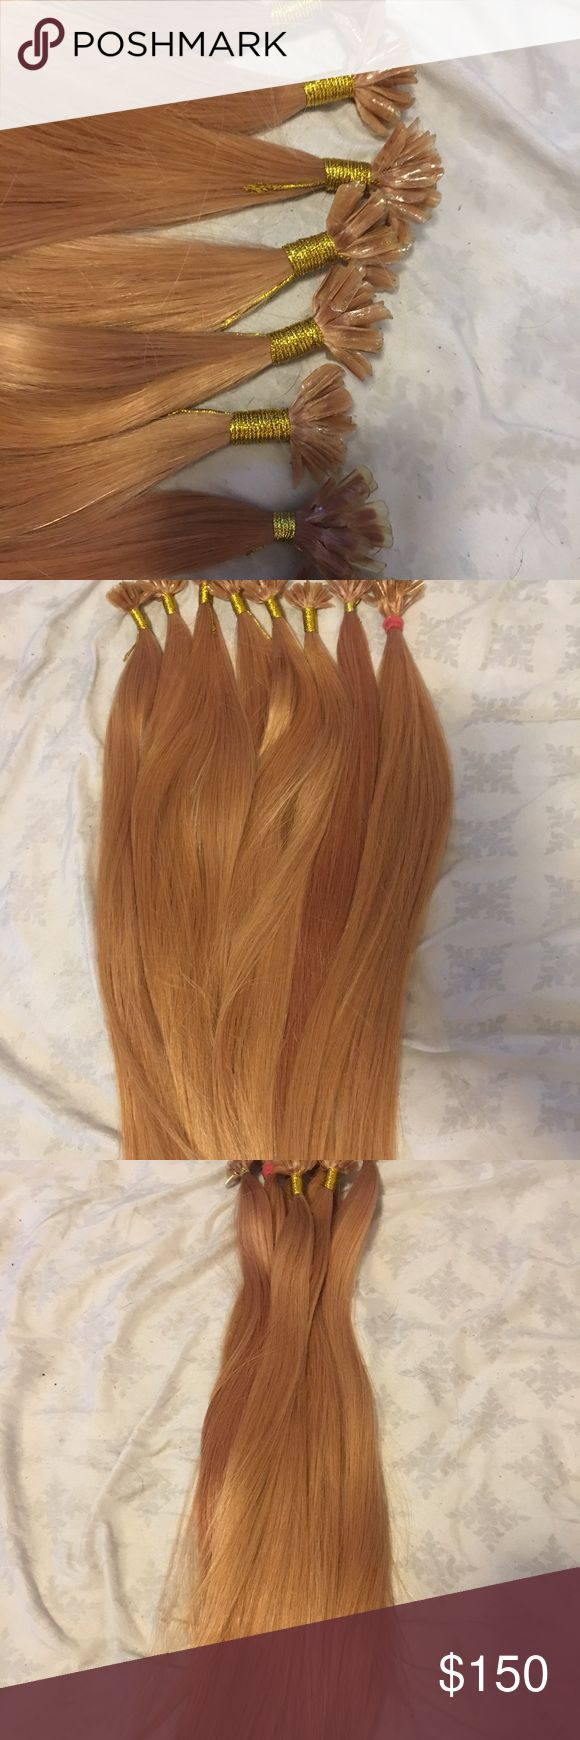 Utip fusion human hair extensions 100% human hair extensions. 18-20 inches. VERY thick and very gorgeous. Can be colored, cut, and styled. Last picture is of me with the other pair i bought in and colored. I bought more than i needed. This is more than enough for a full head! Please make offers and ask questions 😊 Accessories Hair Accessories